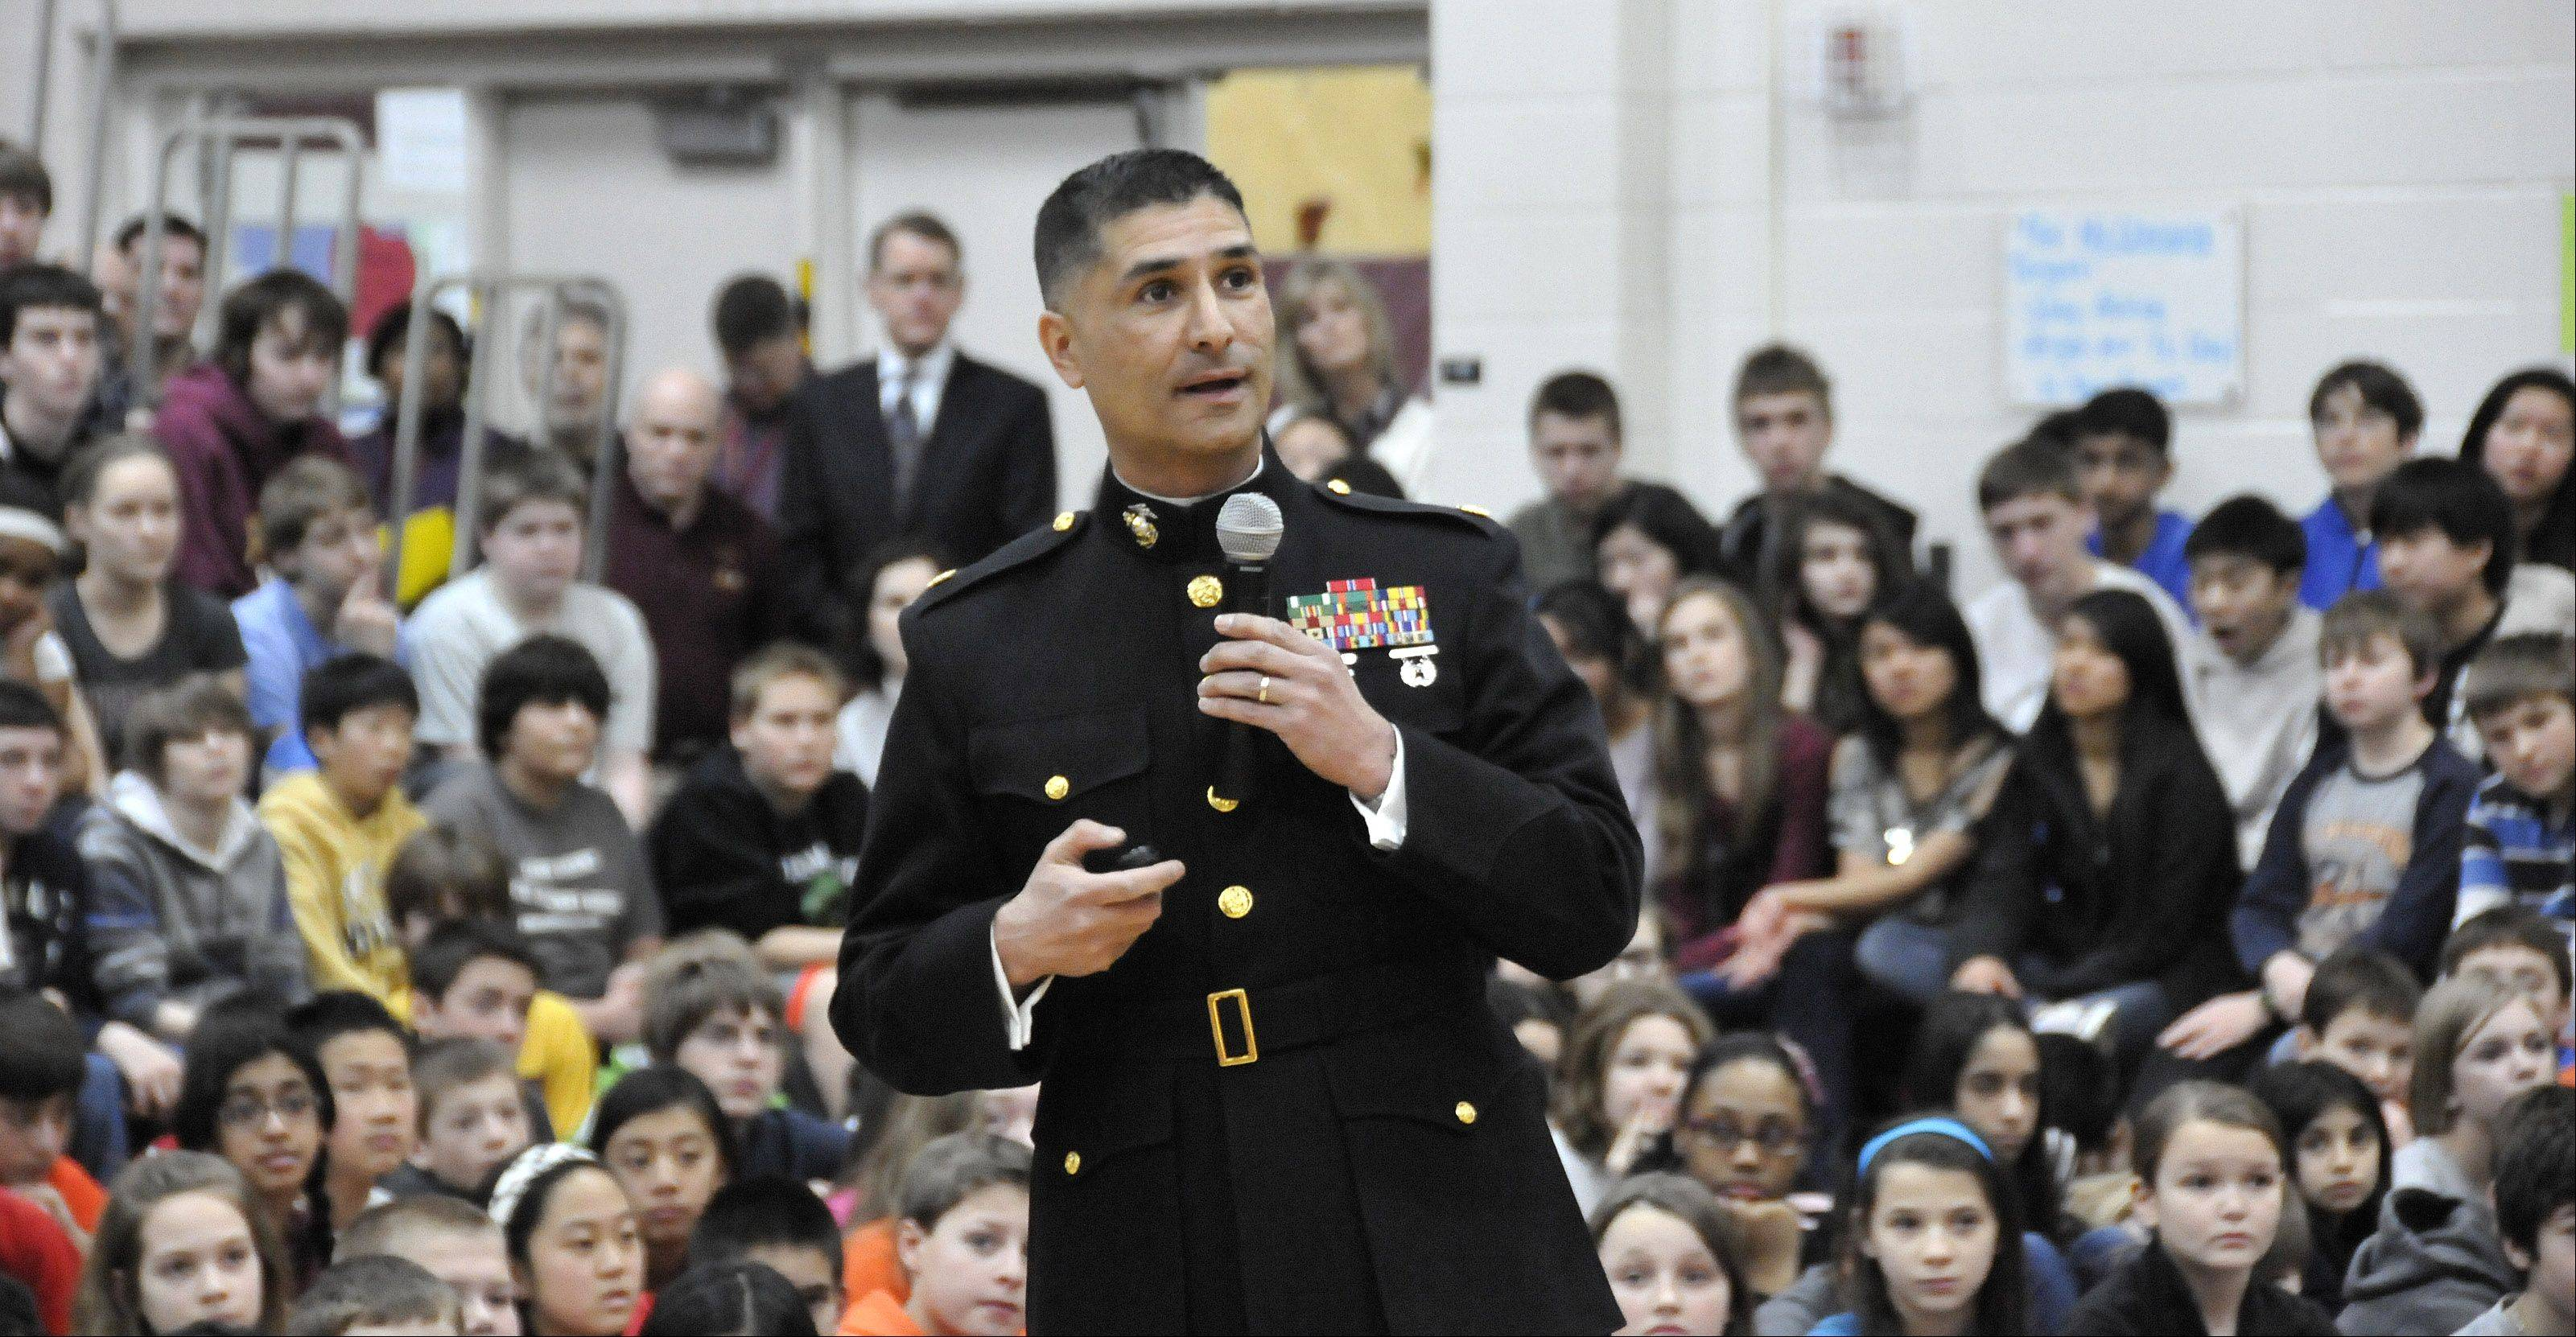 Marine Maj. Guillermo Rosales has served two tours of duty in Iraq and was awarded the Bronze Star for bravery. He�s stationed in Chicago now and lives in Wheeling.